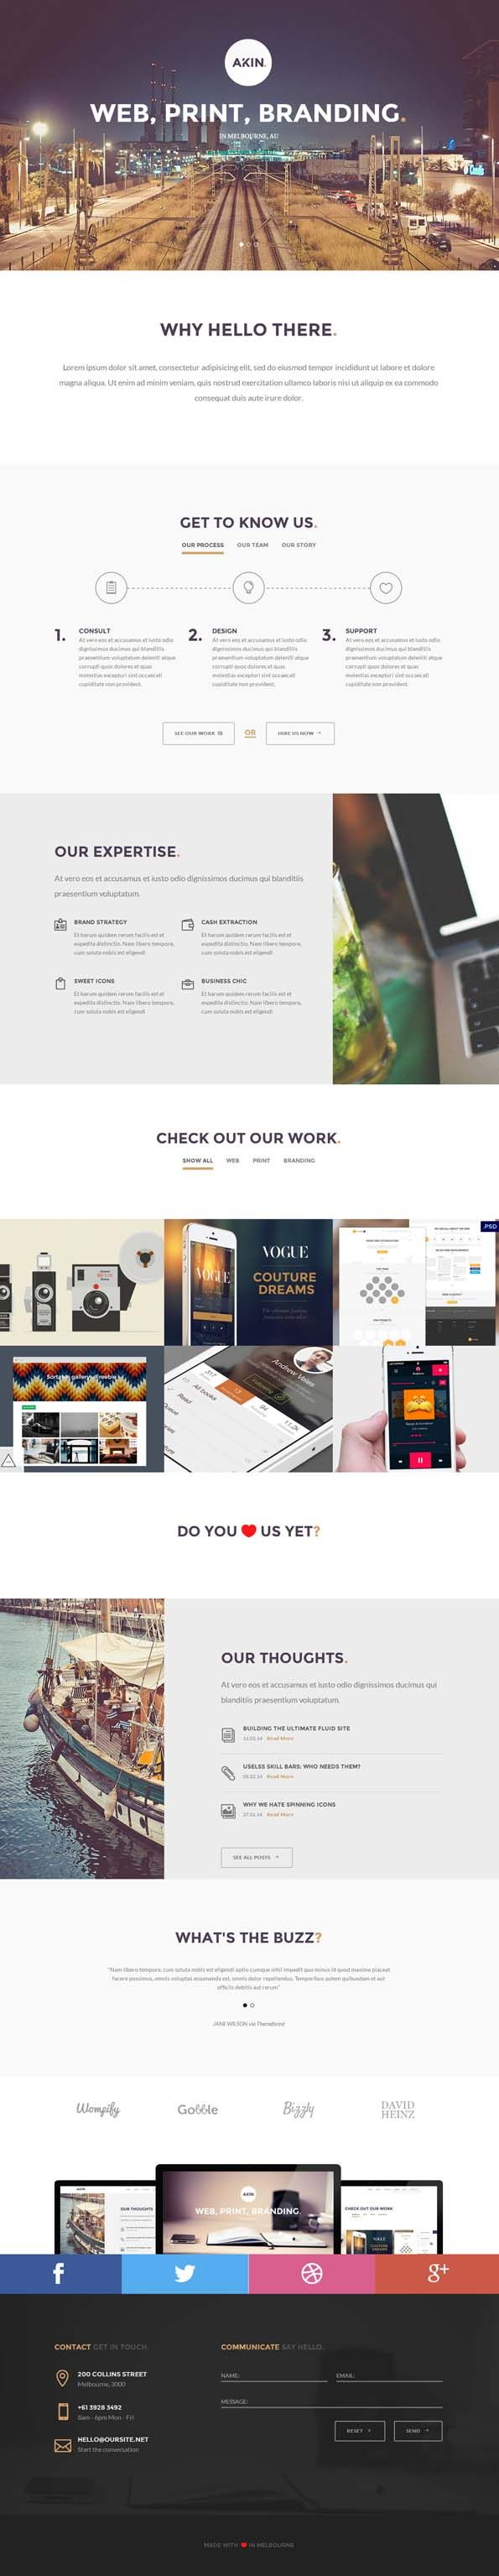 Cool great shapes translated into rubber Akin - One Page, Responsive Template